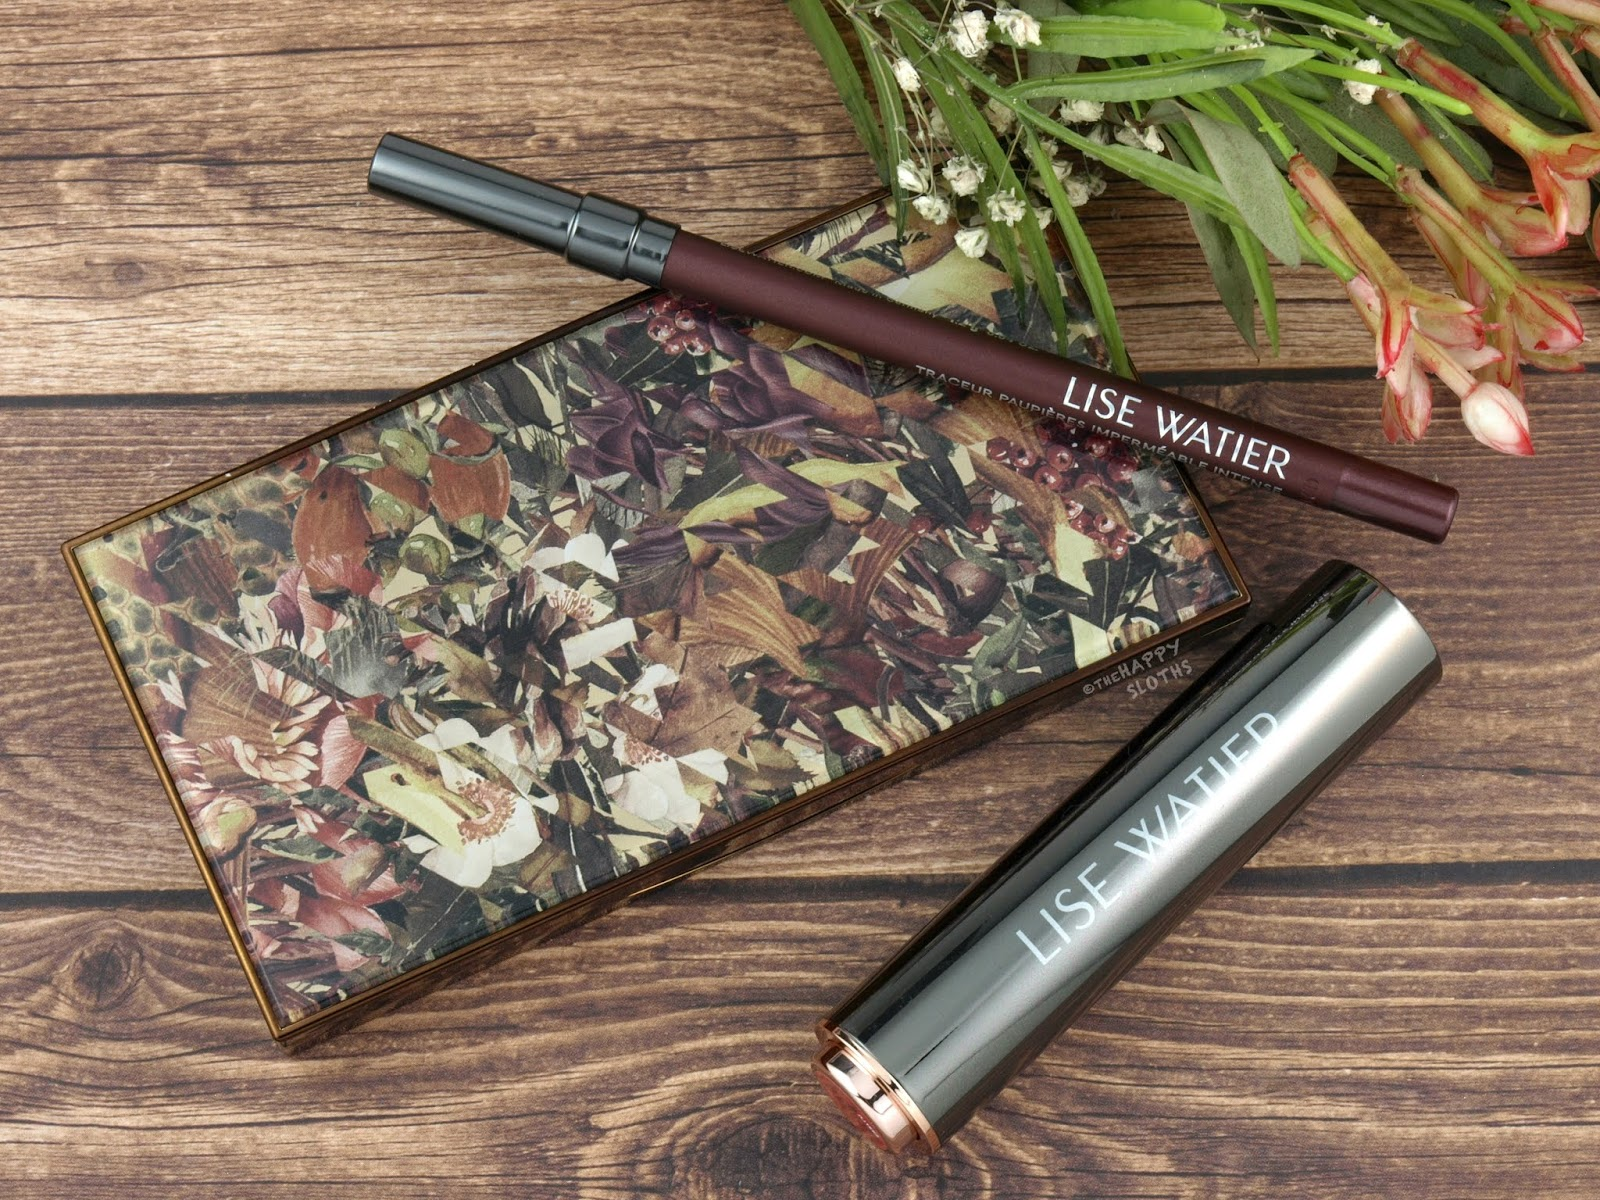 Lise Watier | Fall 2018 Haute Nature Collection: Review and Swatches